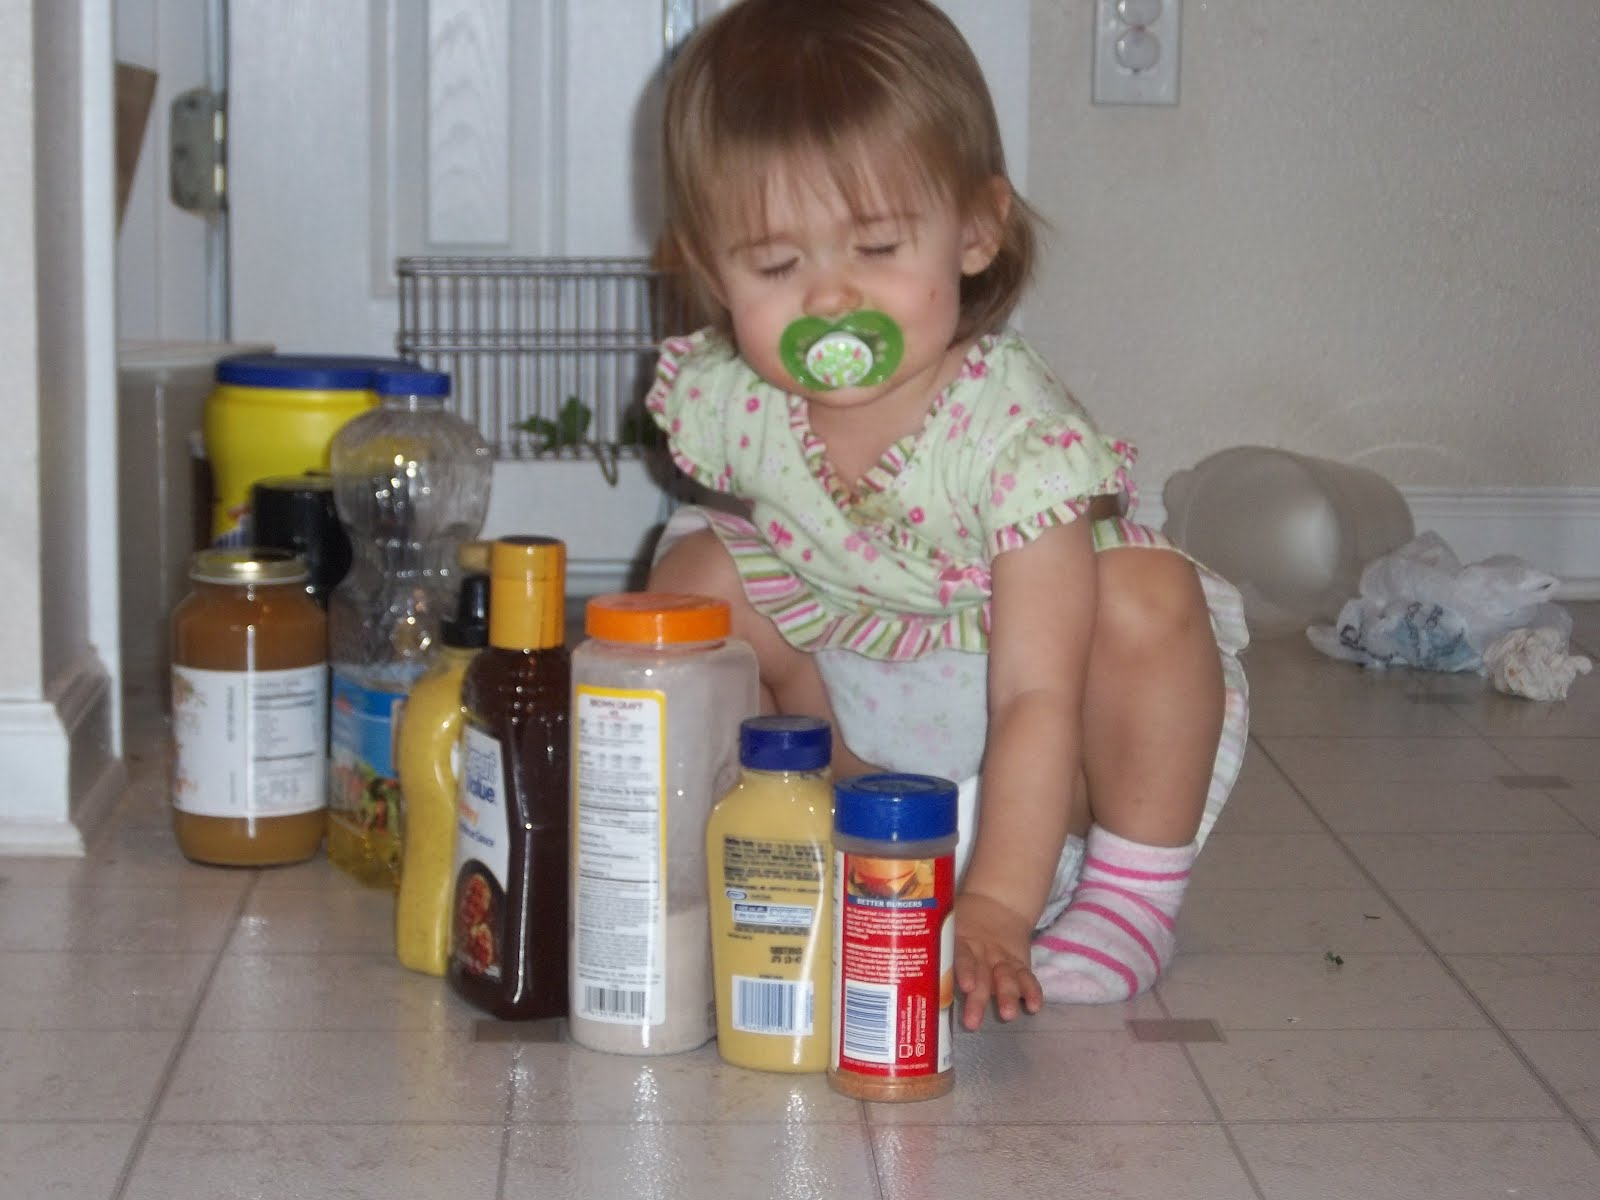 I Swear That This Child Loves To Take Things Out Of The Pantry And Line Them Up In Kitchen